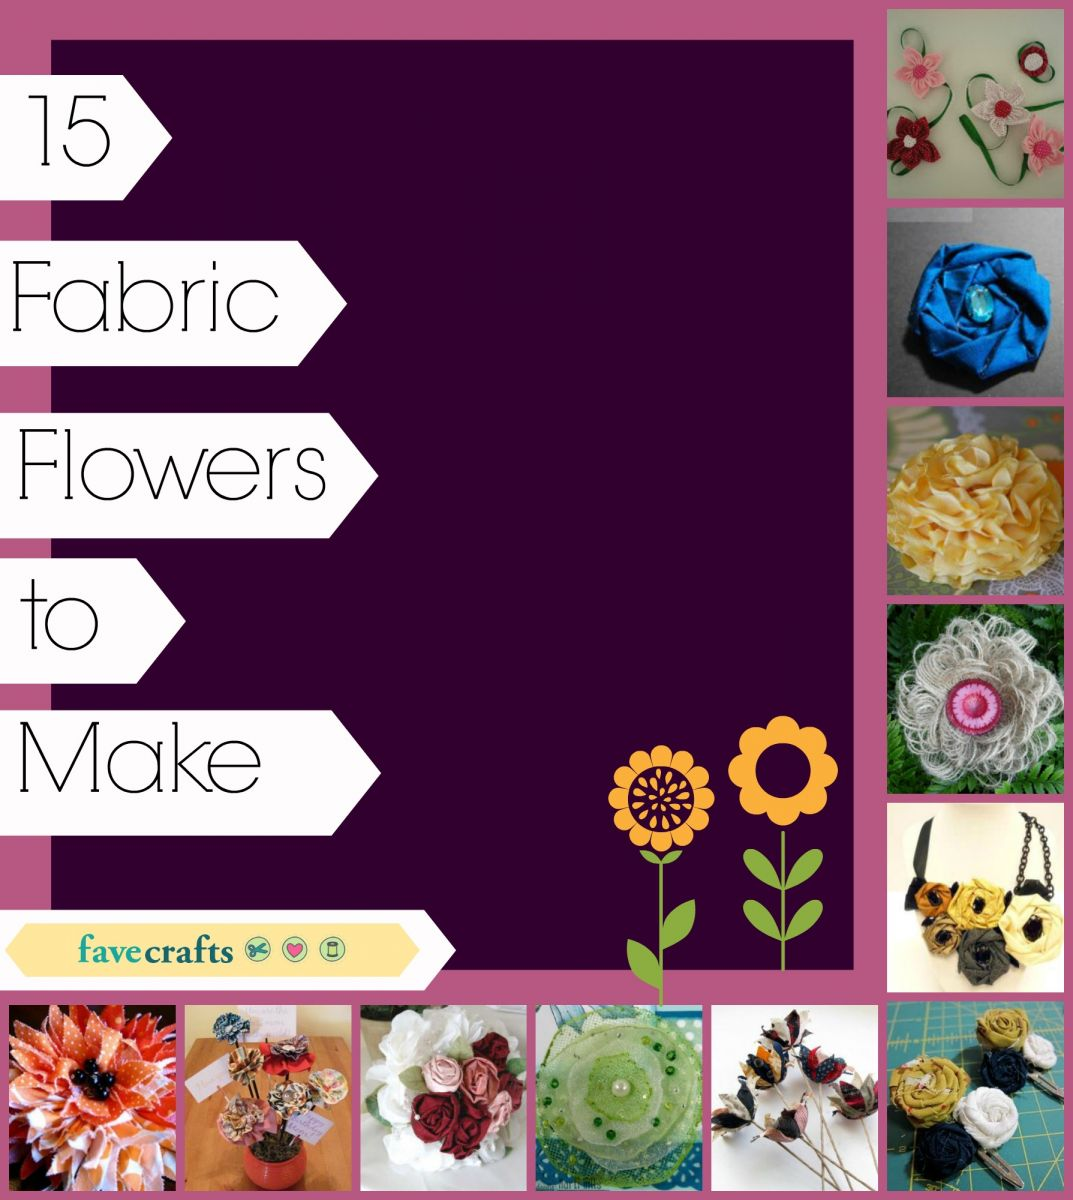 15 Fabric Flowers to Make